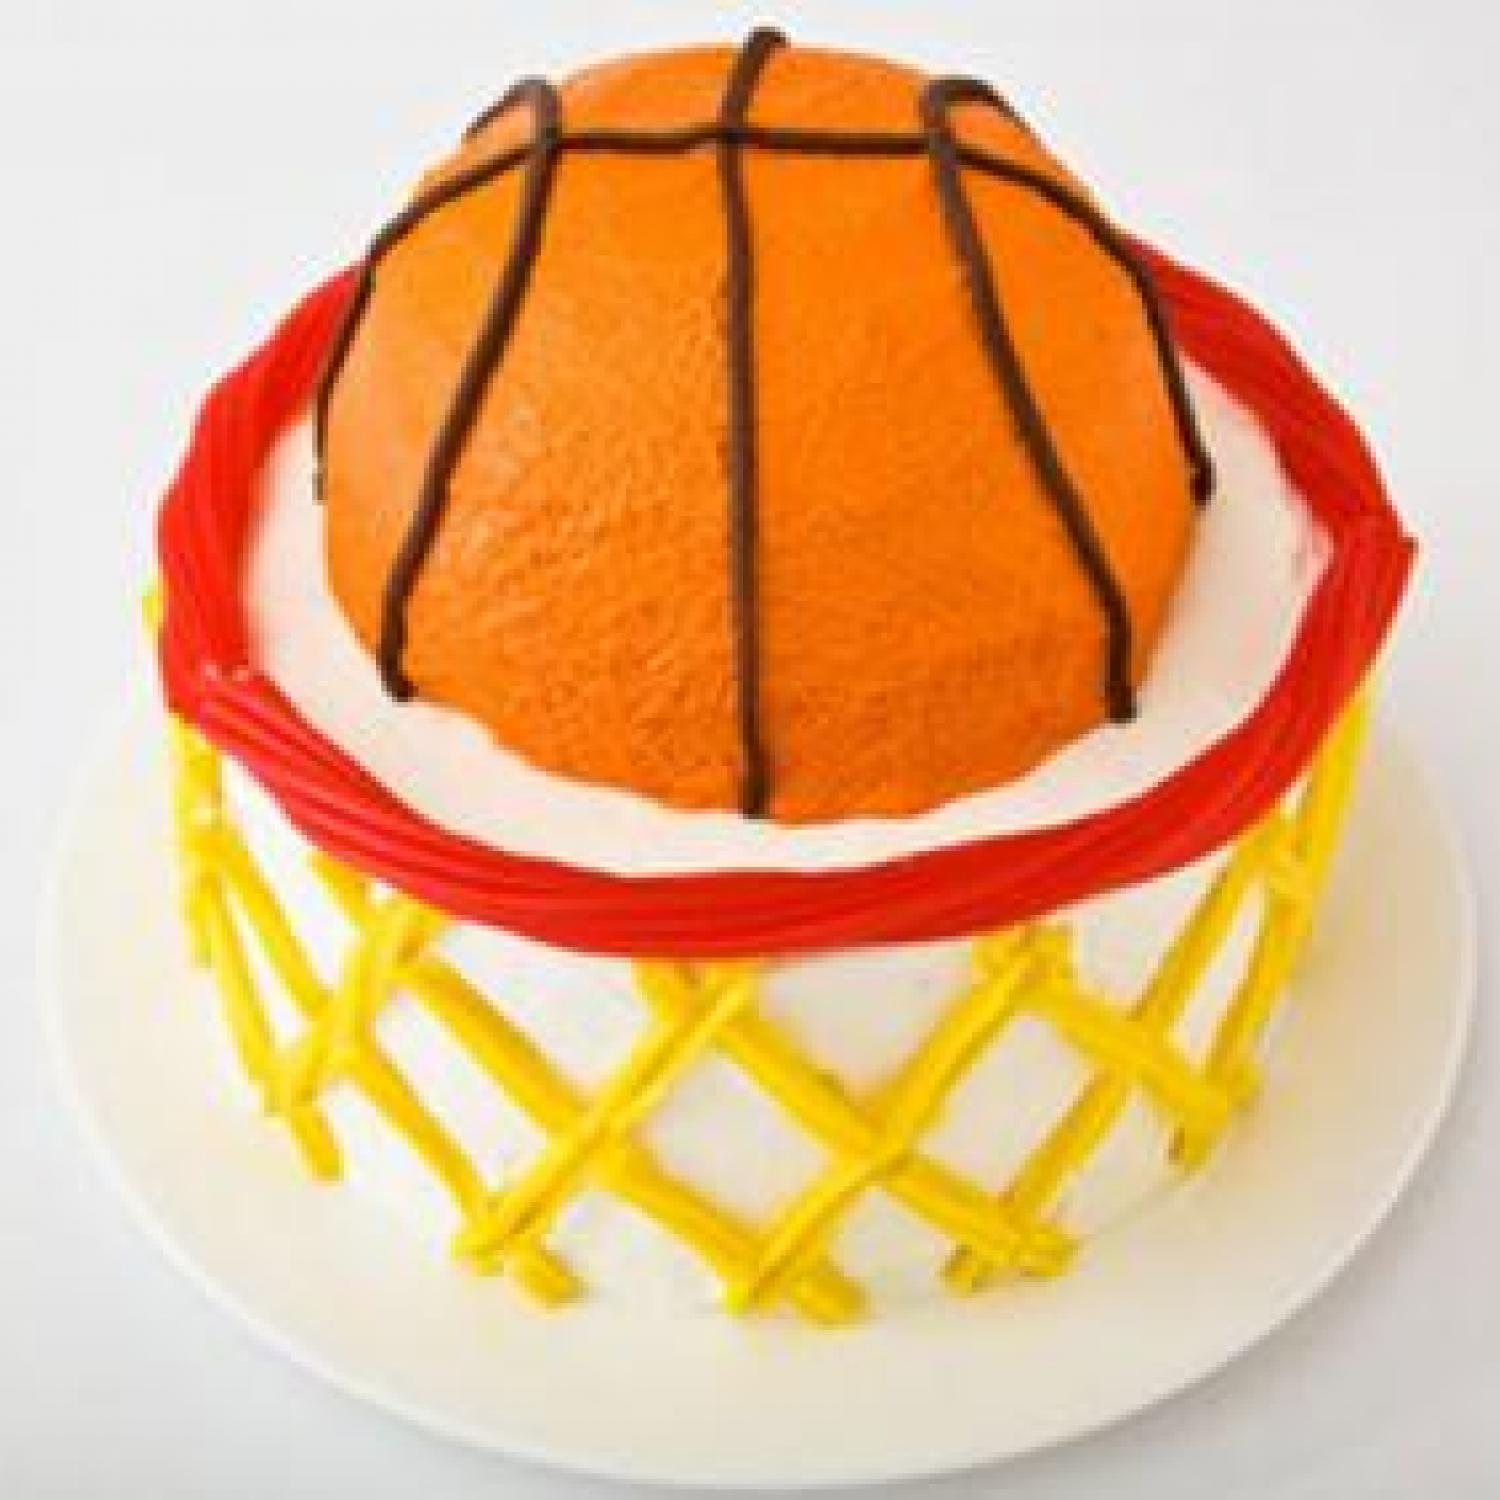 Cake Images Basketball : Basketball with Hoop Birthday Cake Design Parenting